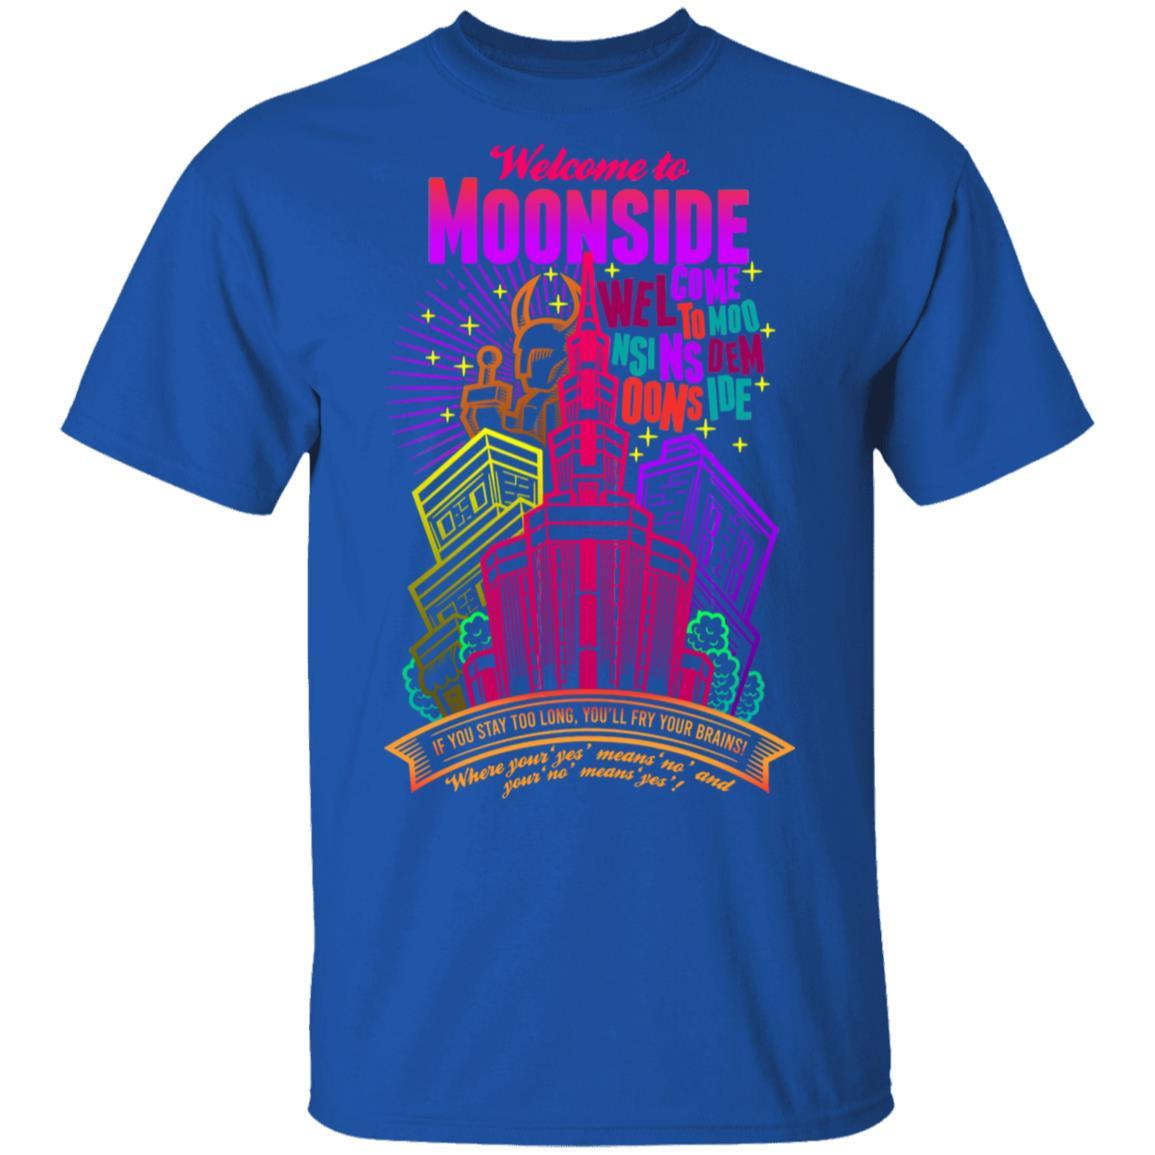 Welcome To Moonside If You Stay Too Long You'll Fry Your Brains T-Shirts, Hoodies 1049-9971-88445012-48286 - Tee Ript